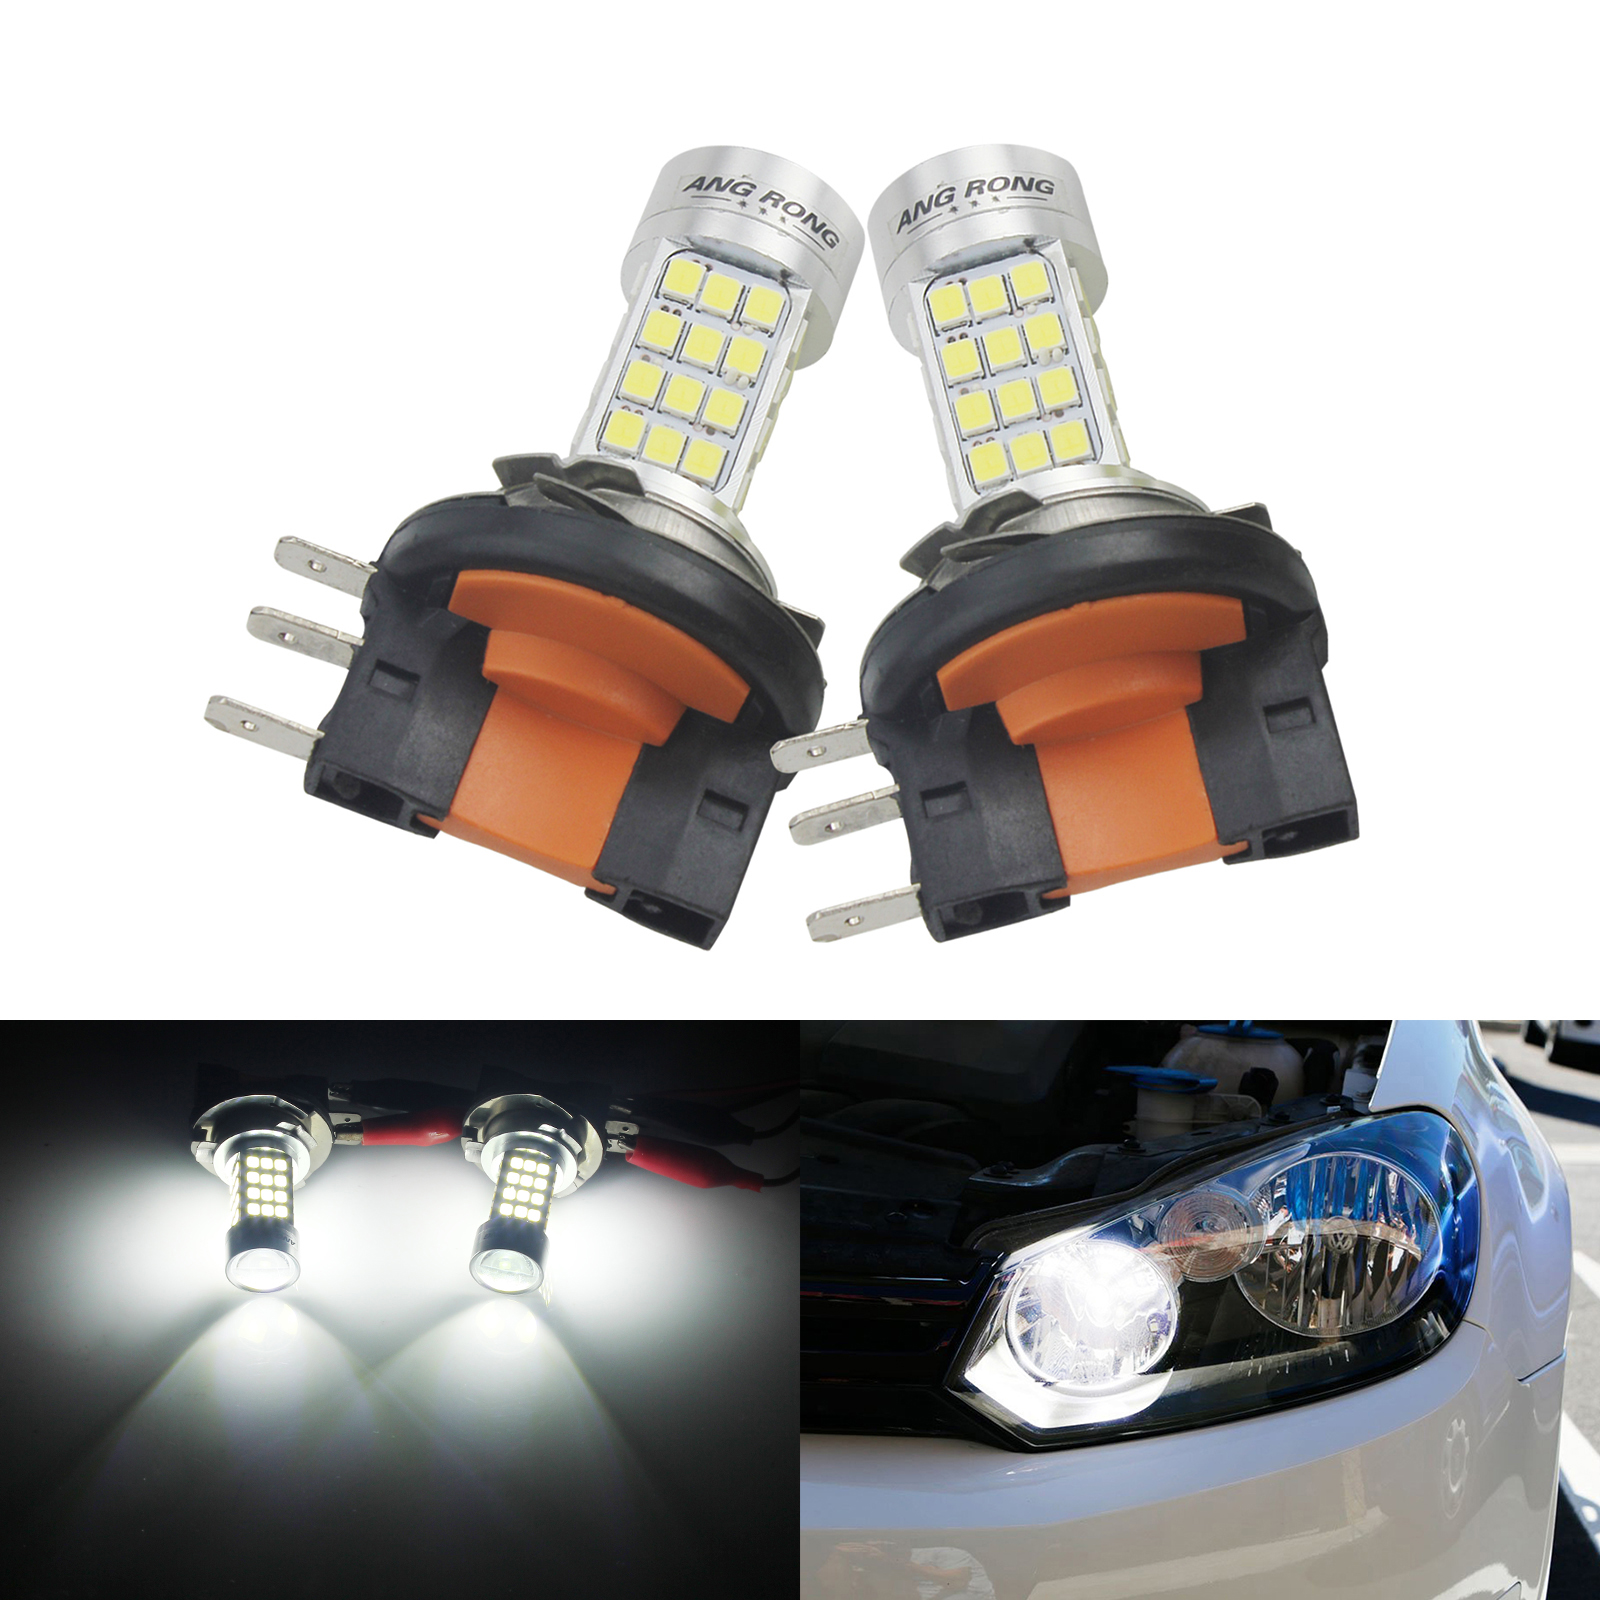 H1 For VW Caddy 2x Cree LED Headlight Bulbs Lights 7200LM 2 side chips 2017 New